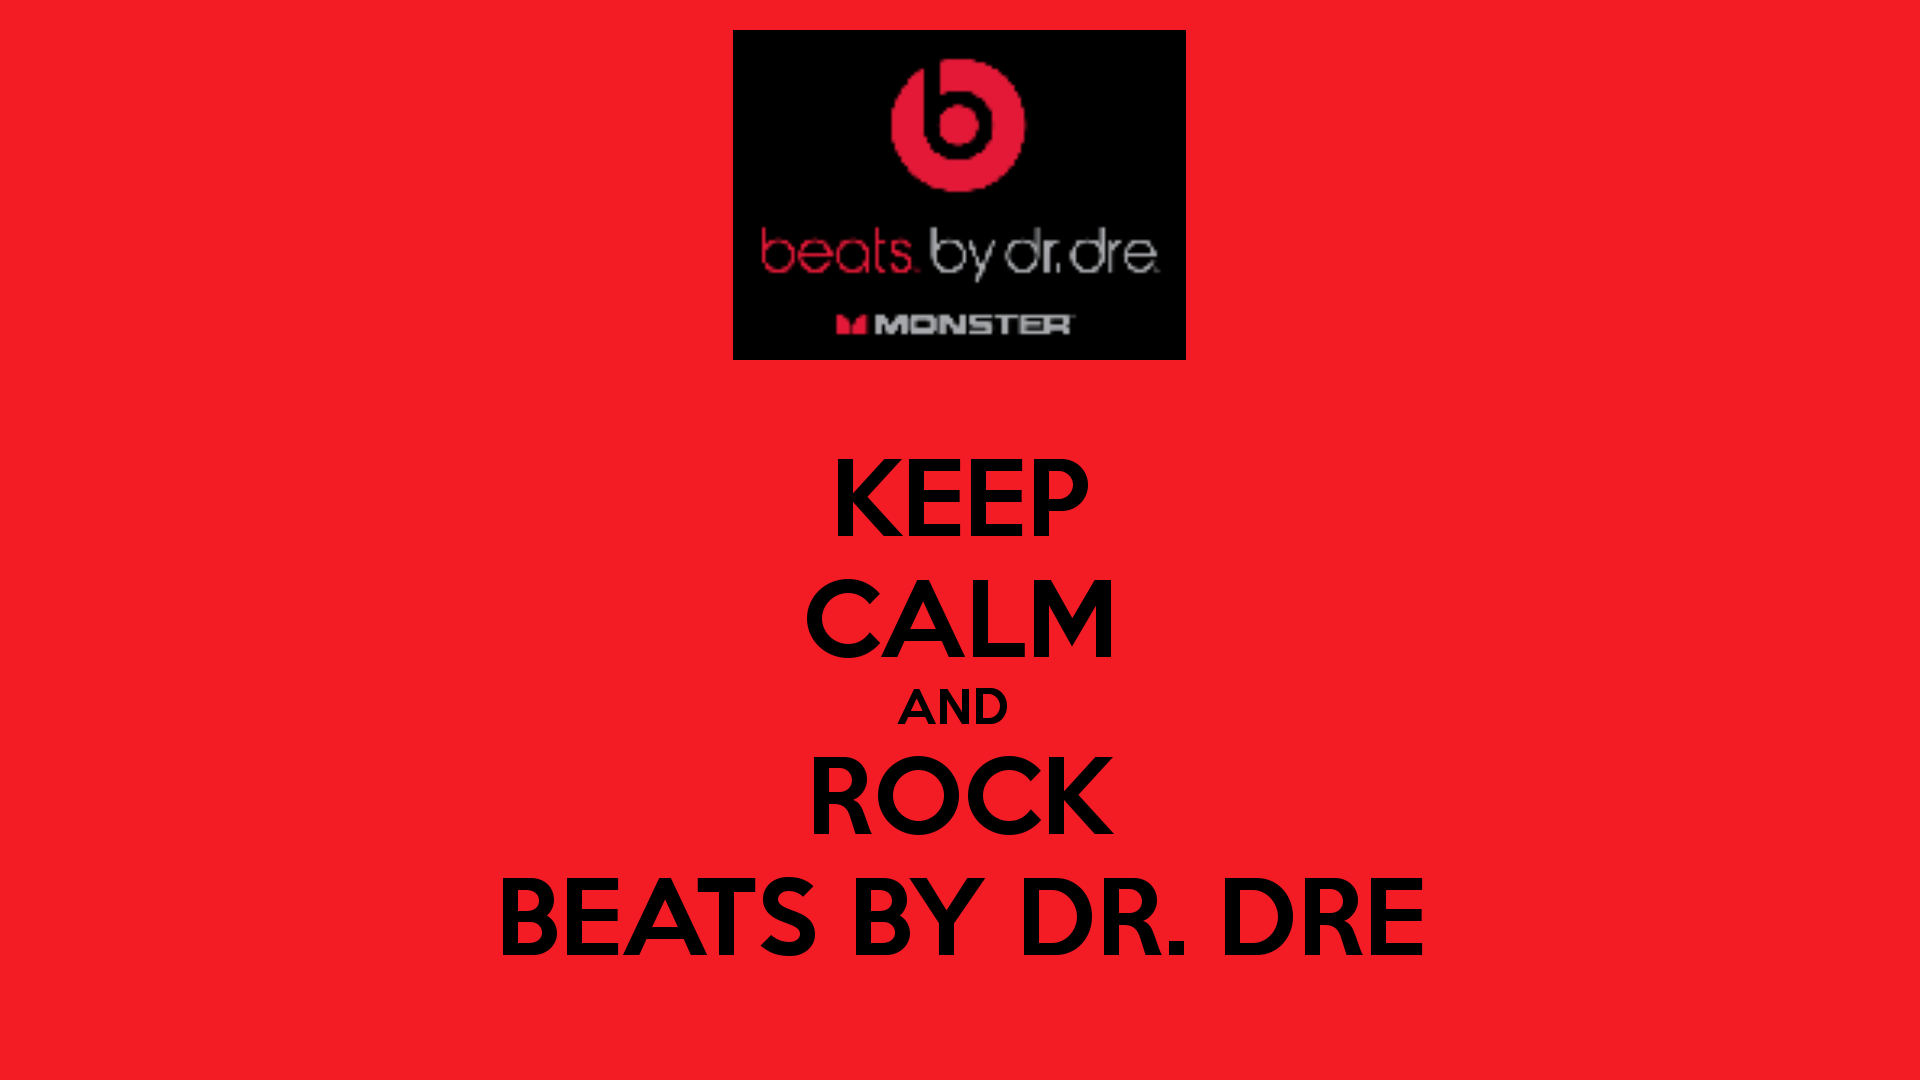 Dr. Dre Beats images Beats Wallpaper HD wallpaper and background photos